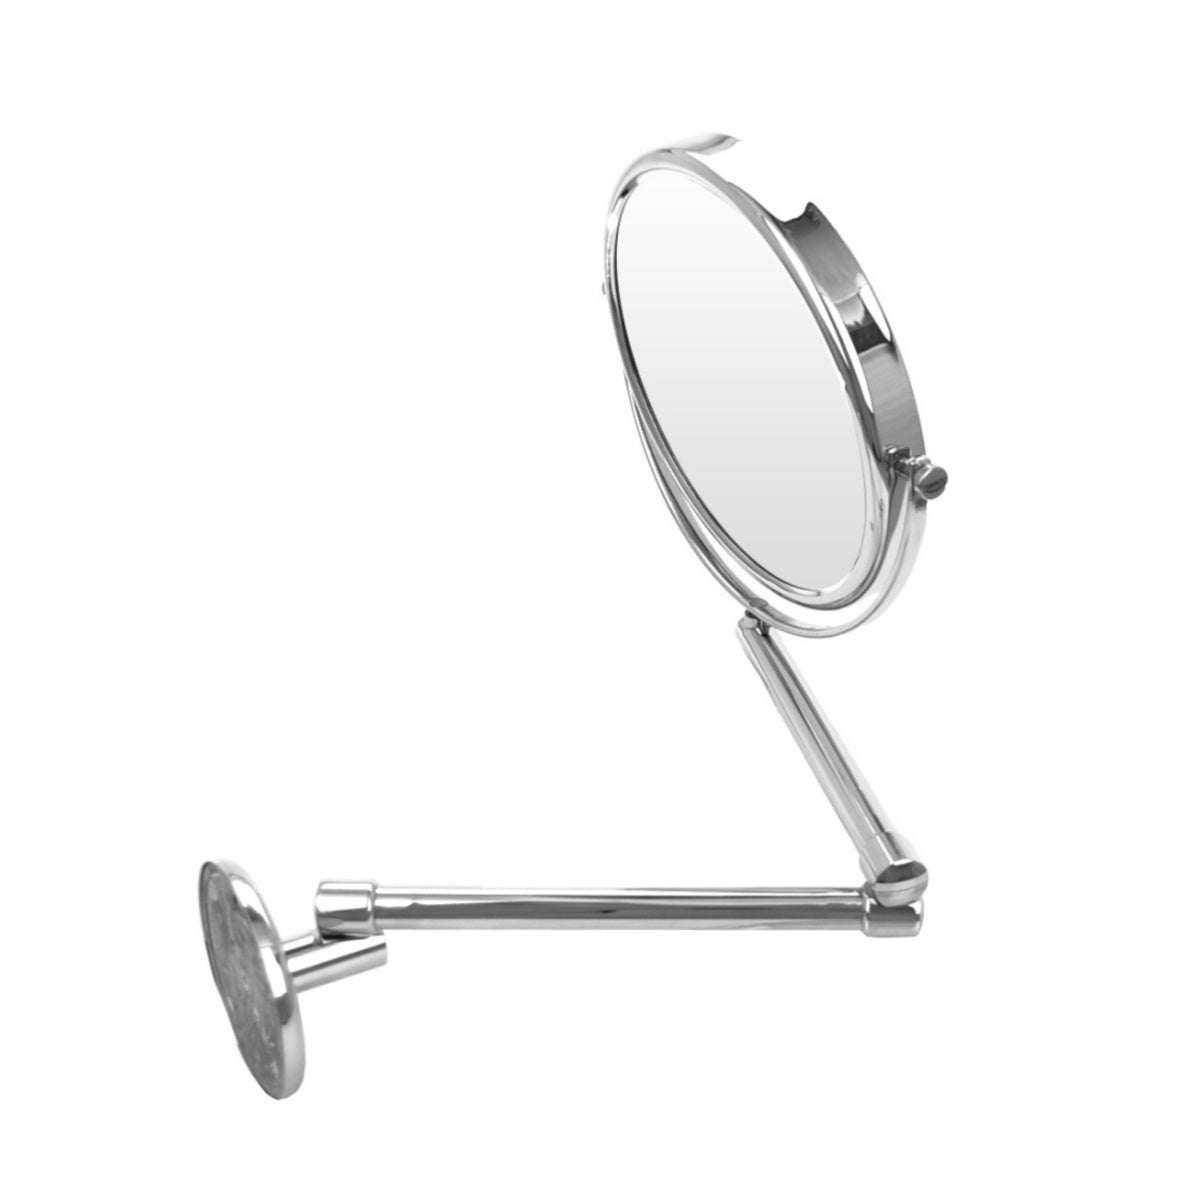 Frasco Extra Reach Luxury Wall Mirror, 3x